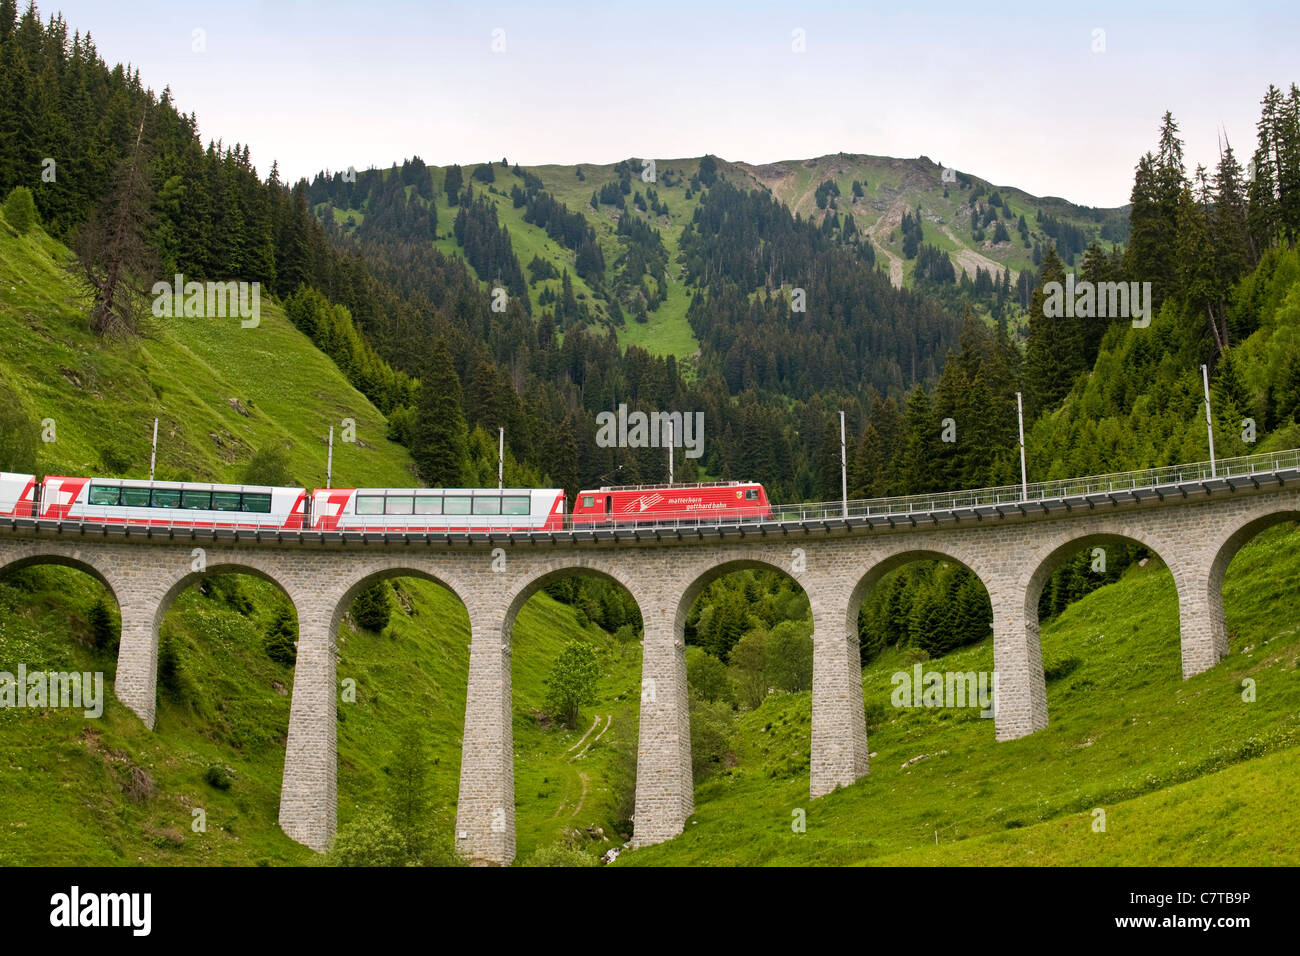 Europe, Switzerland, the Glacier Express - Stock Image